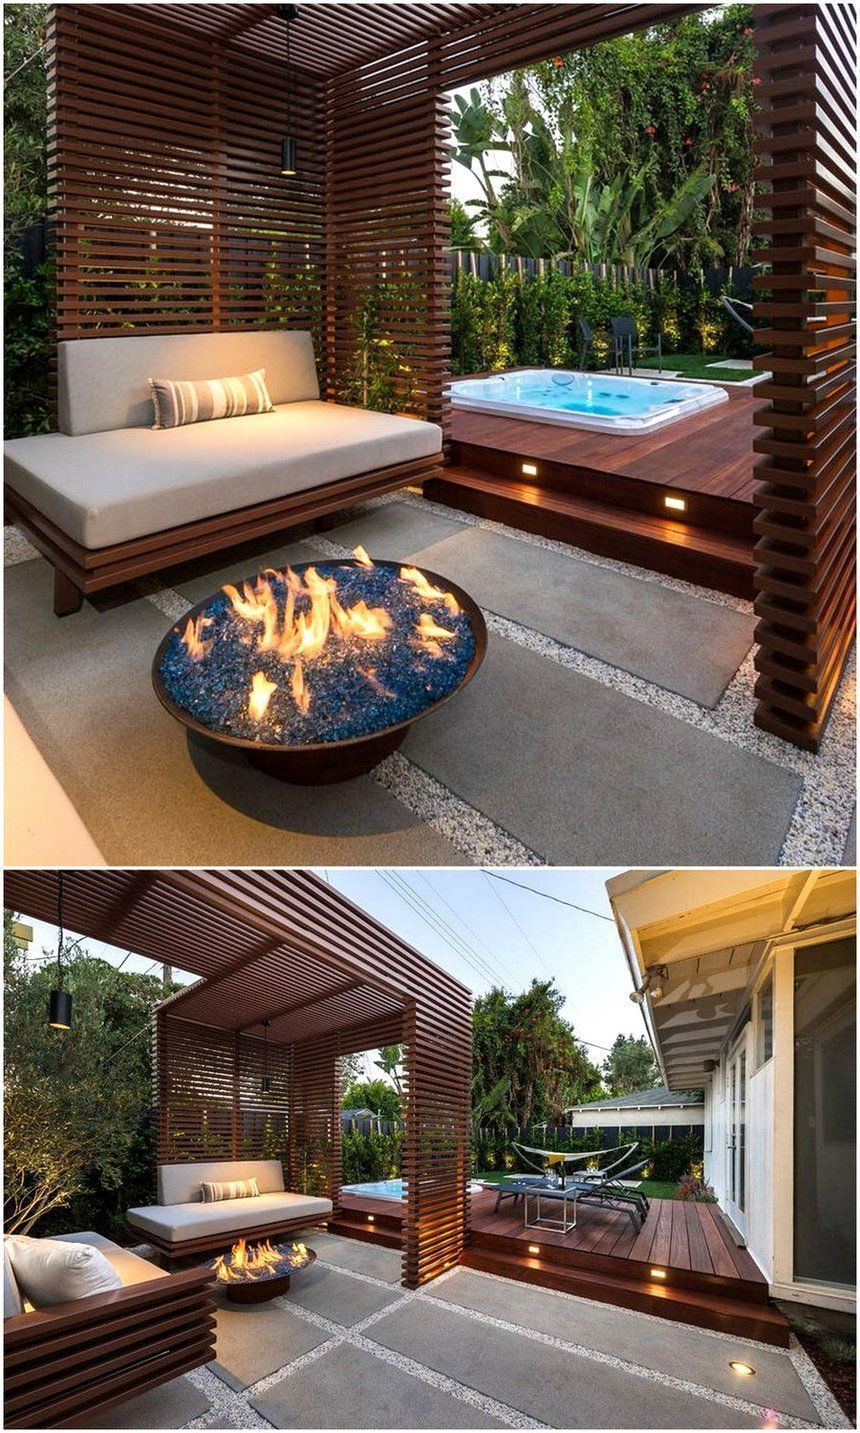 let u2019s have a wonderful romantic time at the dashing styling of this pergola deck idea  show your